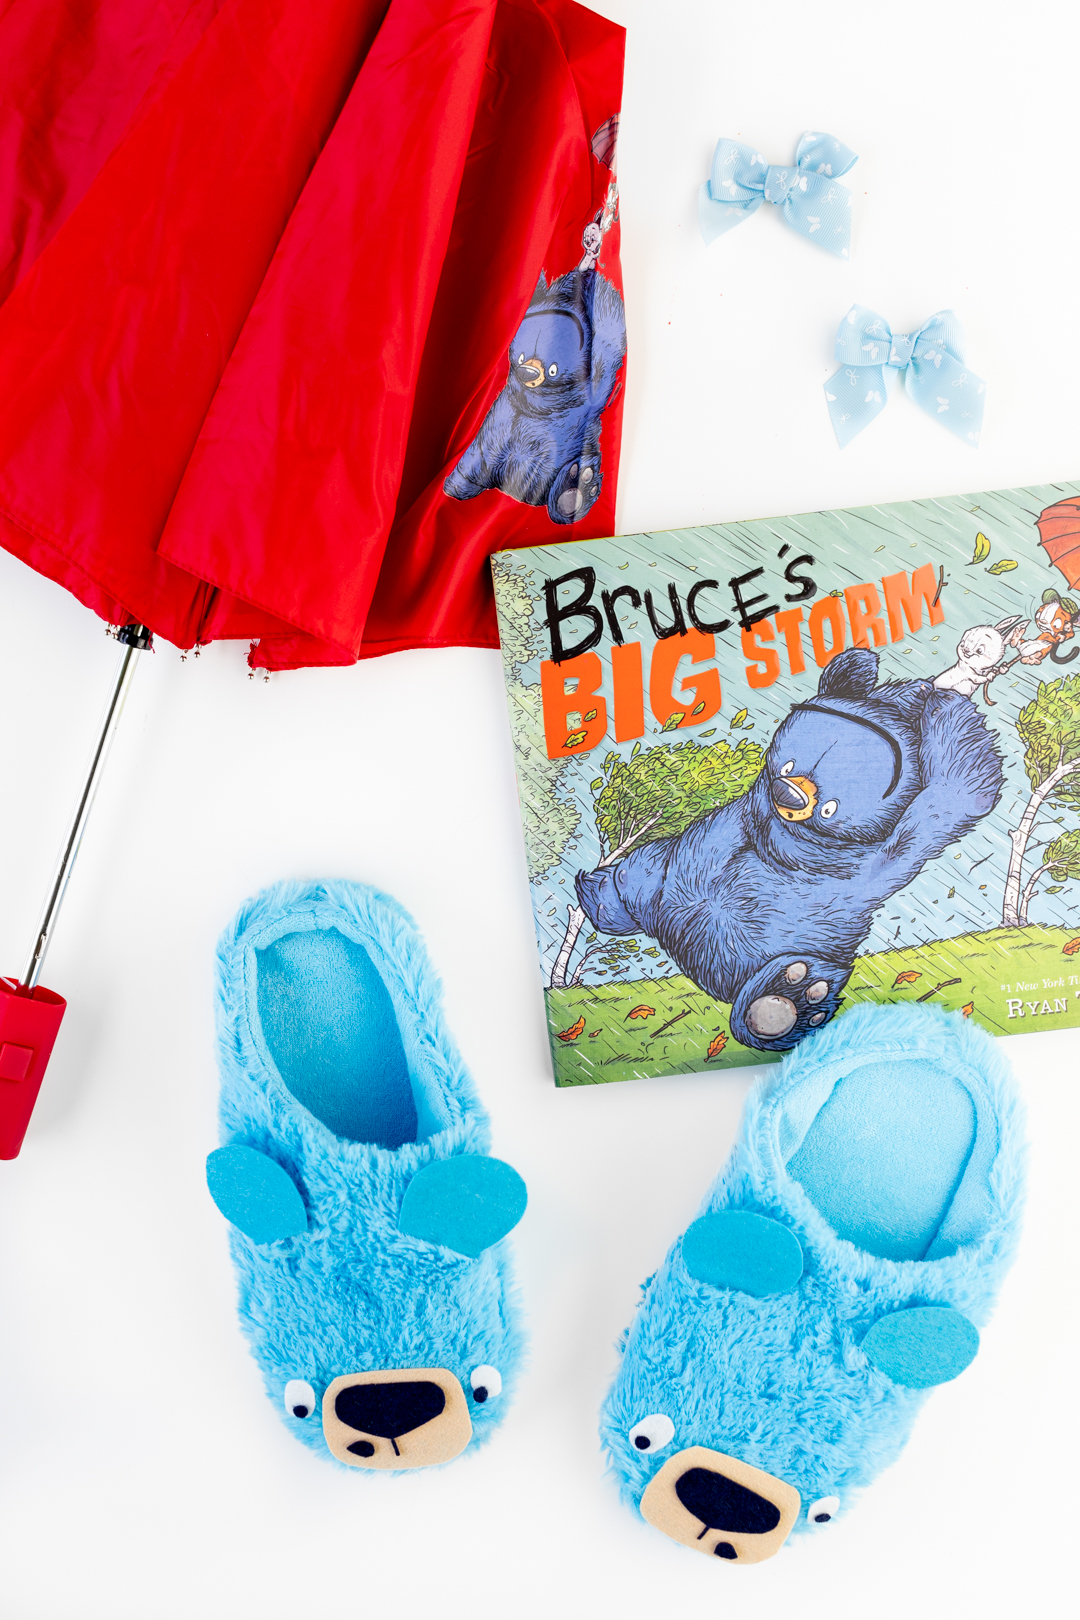 Bruce's Big Storm Book with Cute Bruce Umbrella and Bruce Slippers!